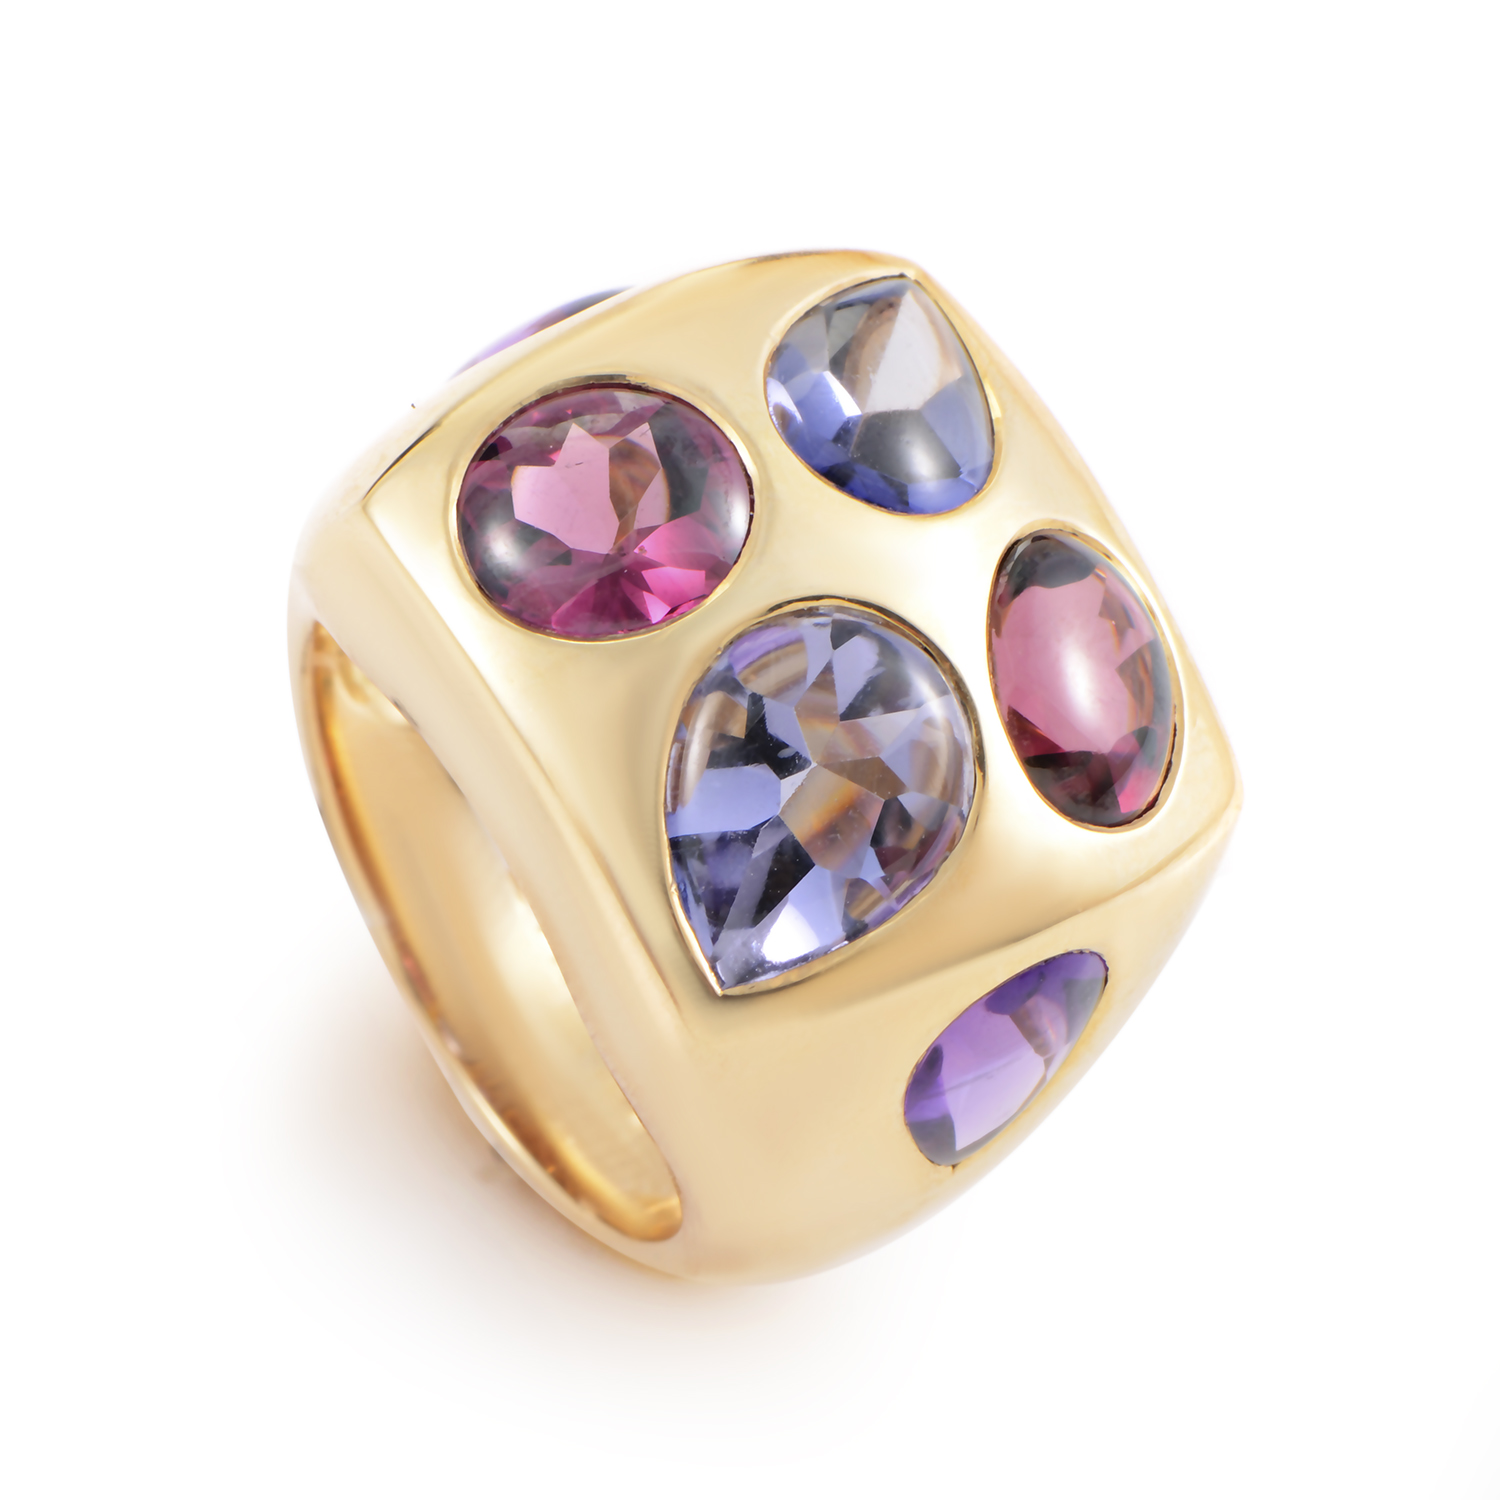 Chanel 18K Yellow Gold Amethyst Iolite Tourmaline Ring